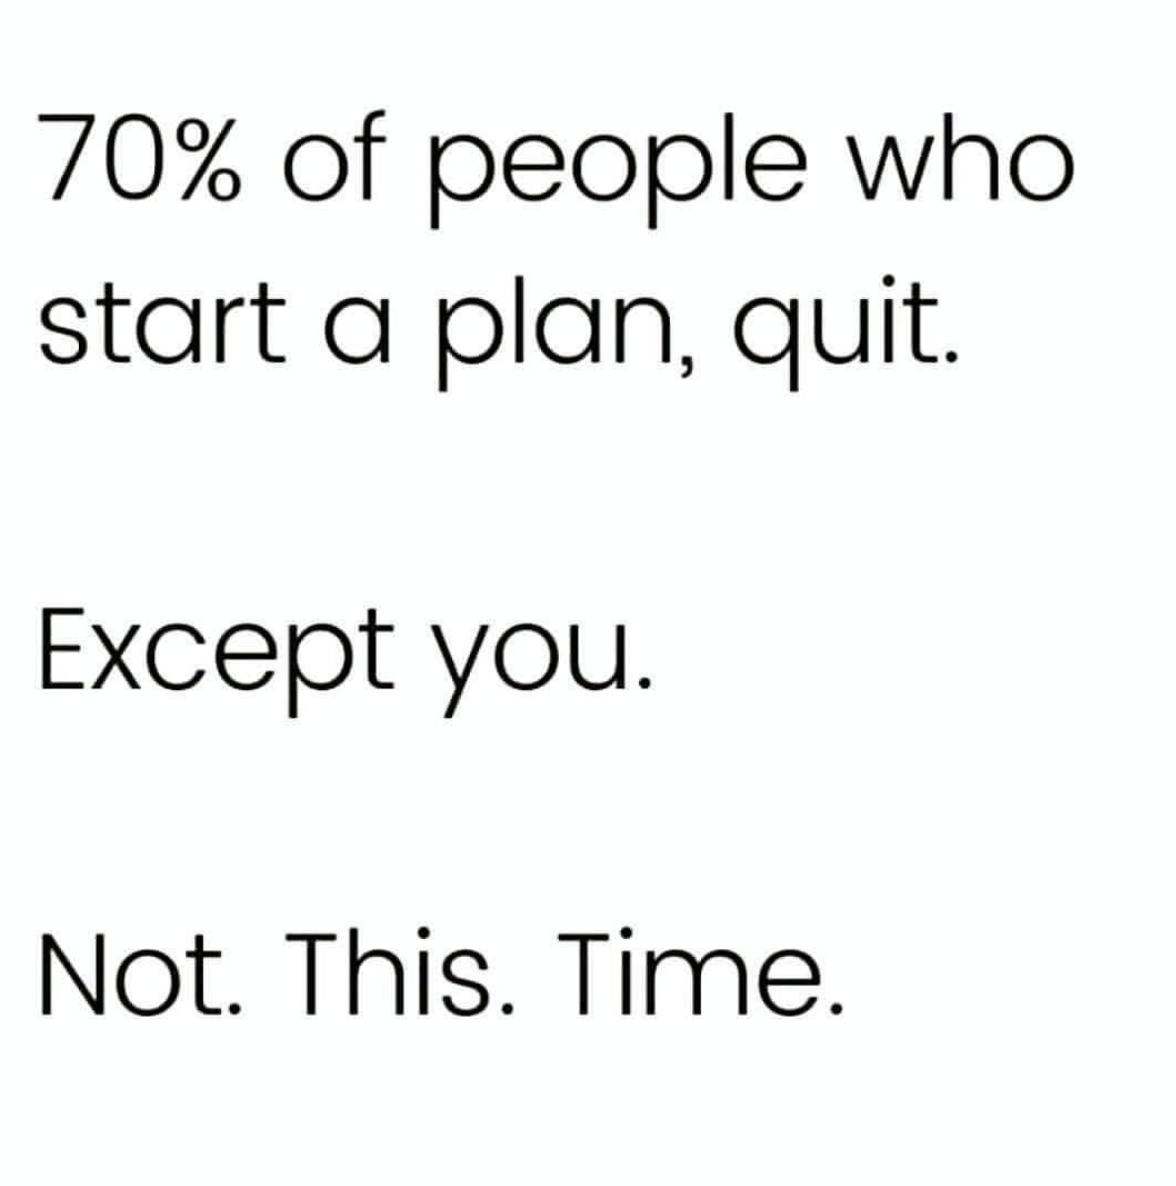 [Image] Never give up, fight no matter what to achieve your goals in life.